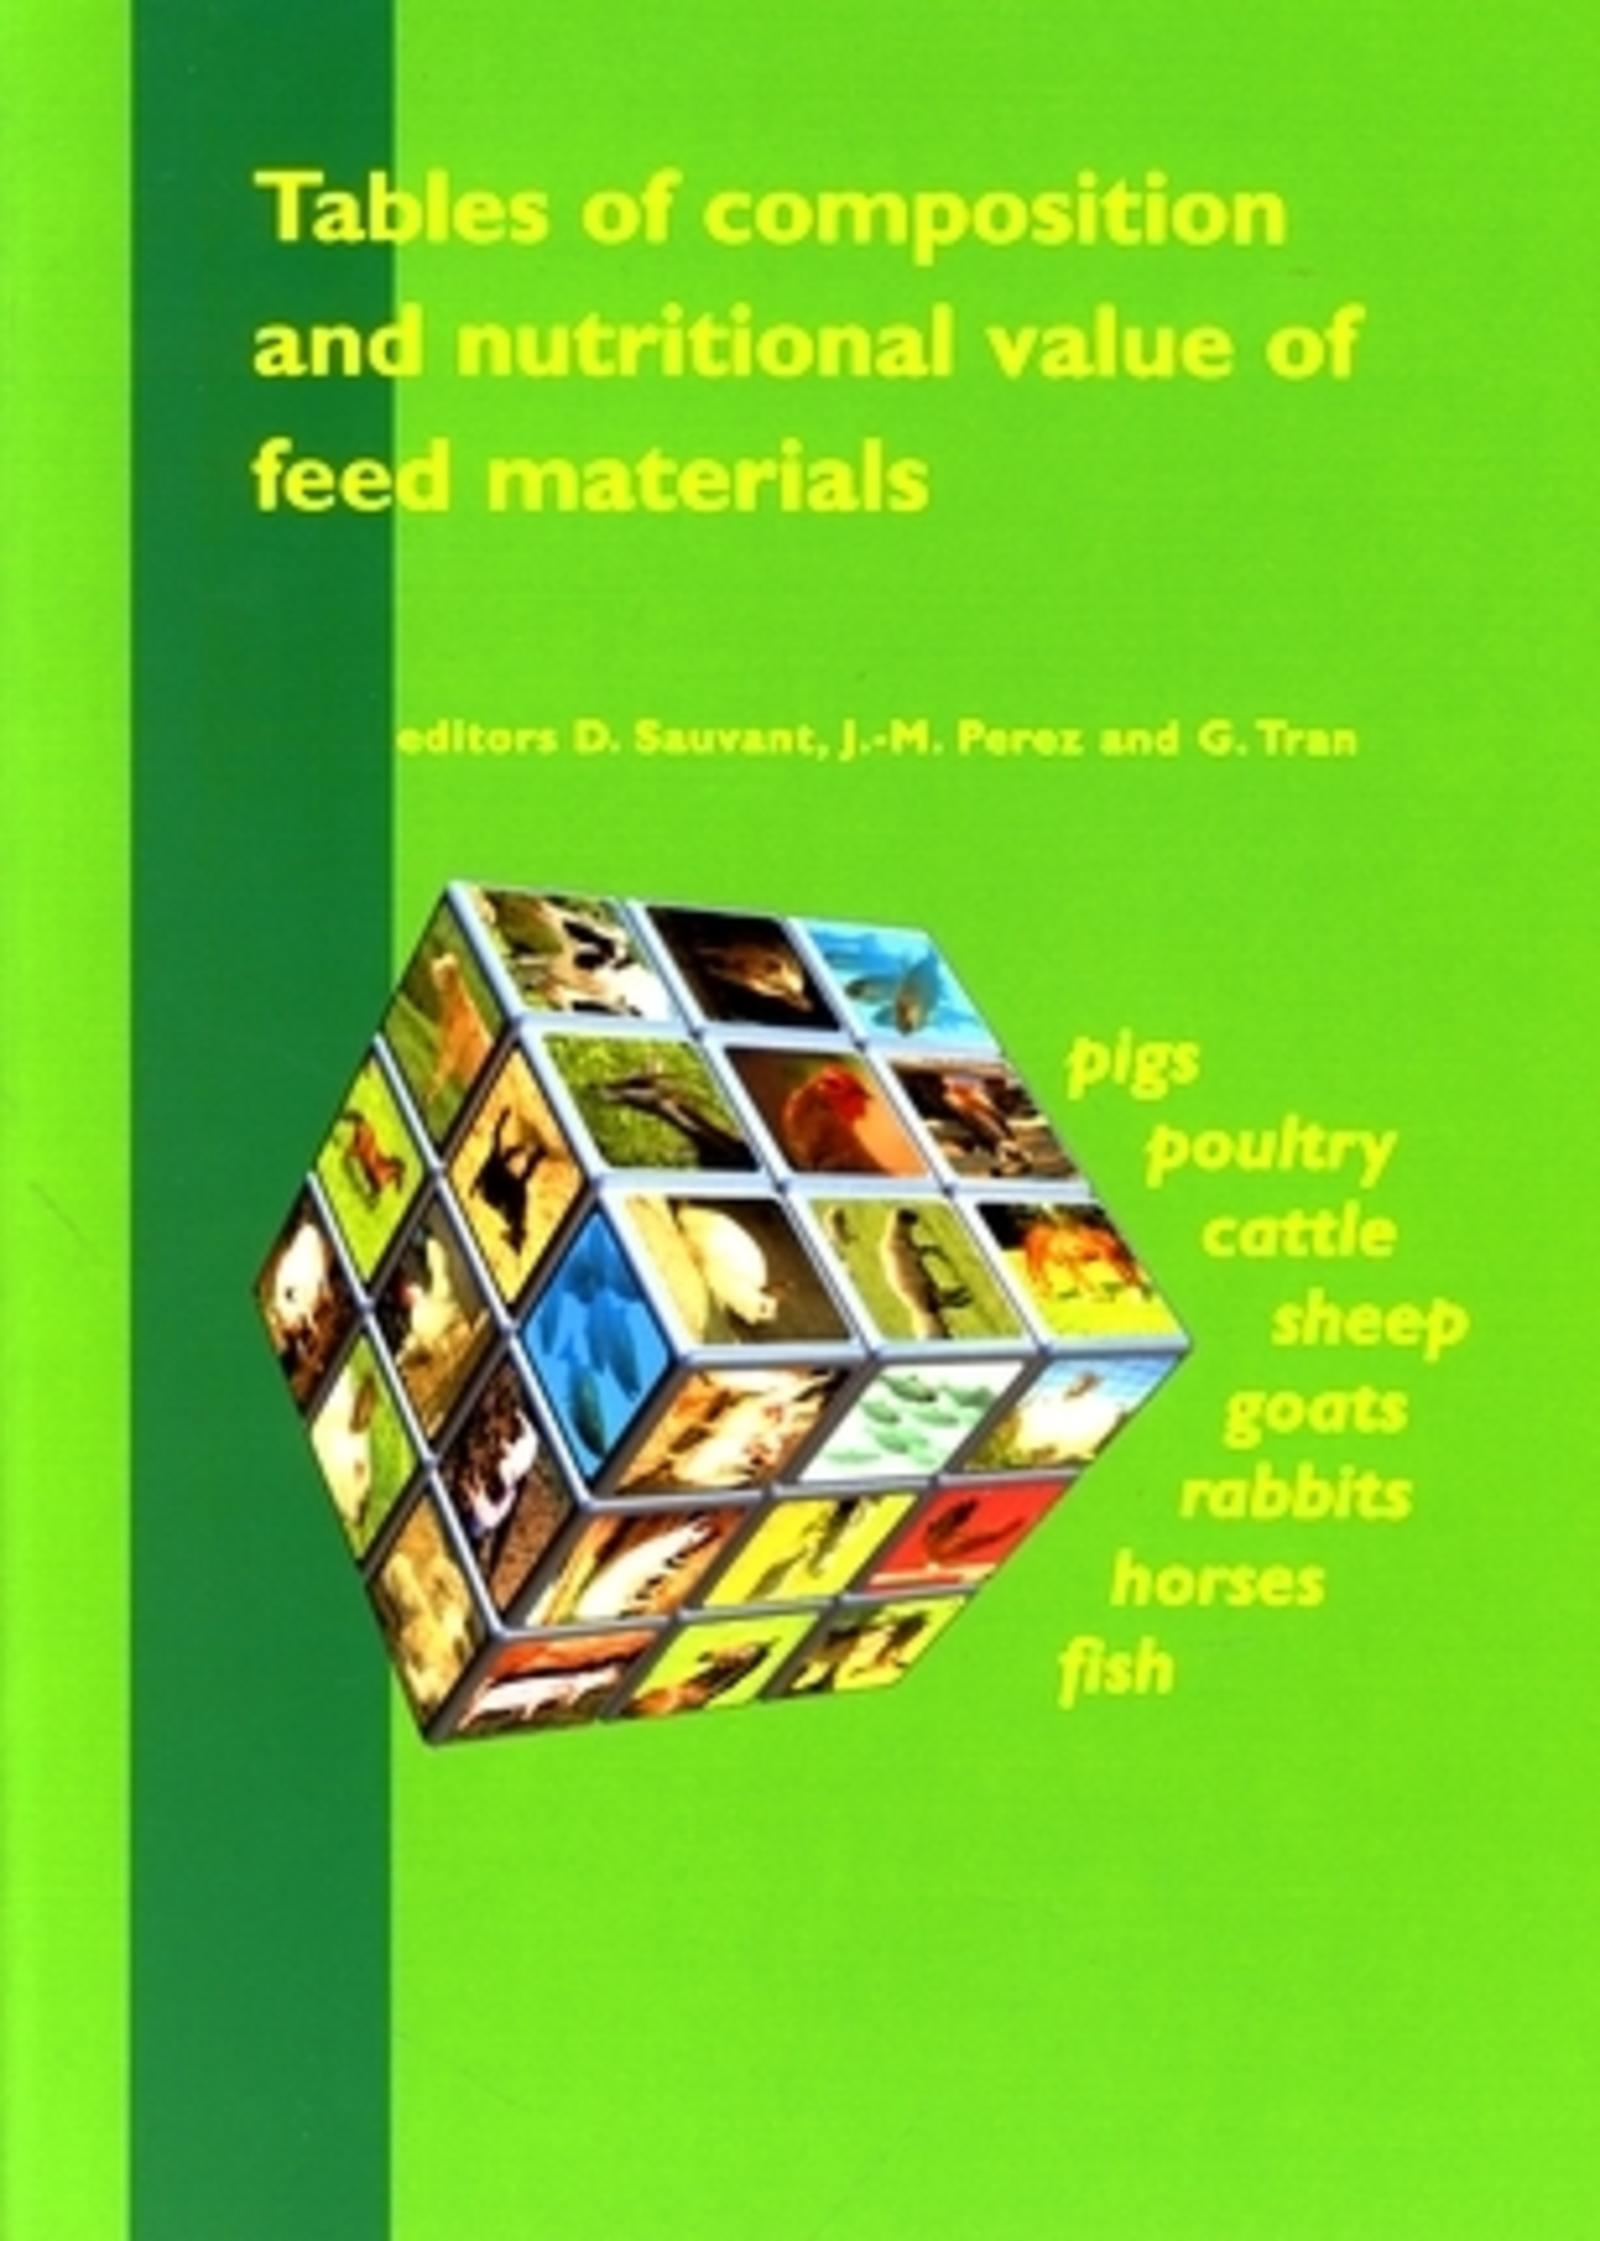 TABLES OF COMPOSITION AND NUTRITIONAL VALUE OF FEED MATERIALS - 2ND REVISED AND CORRECTED EDITION